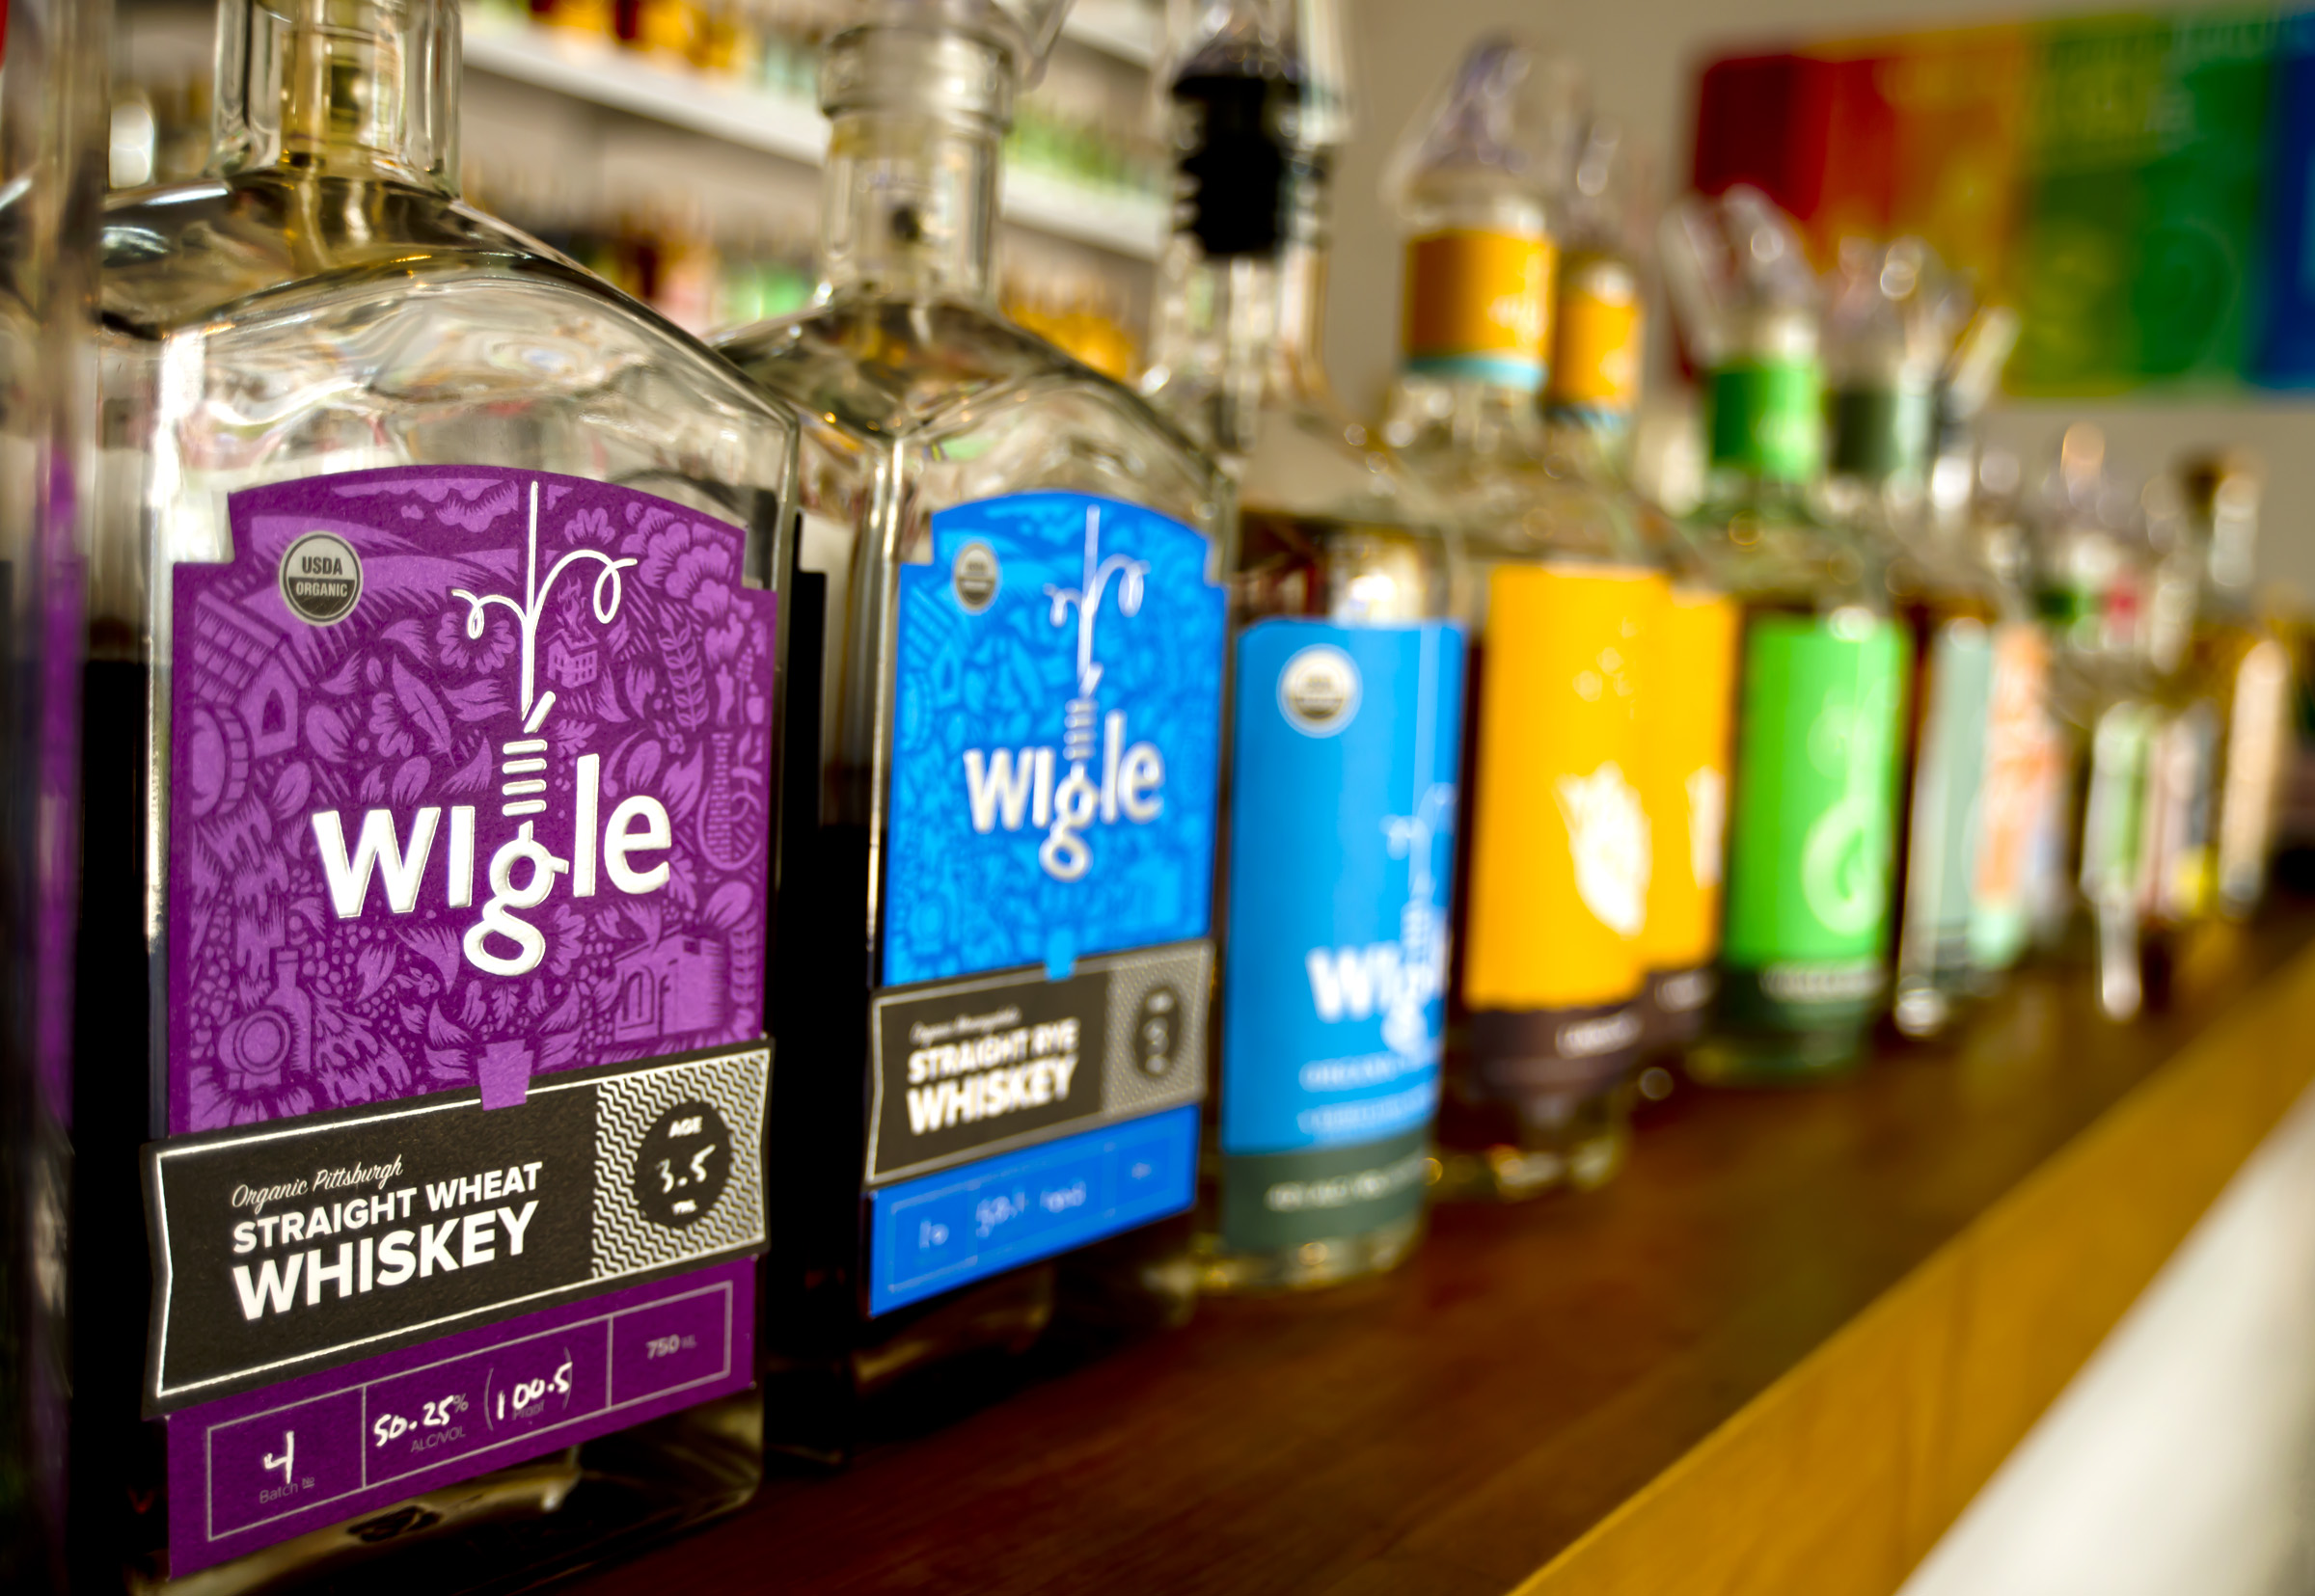 WIGLE WHISKEY Barrelhouse